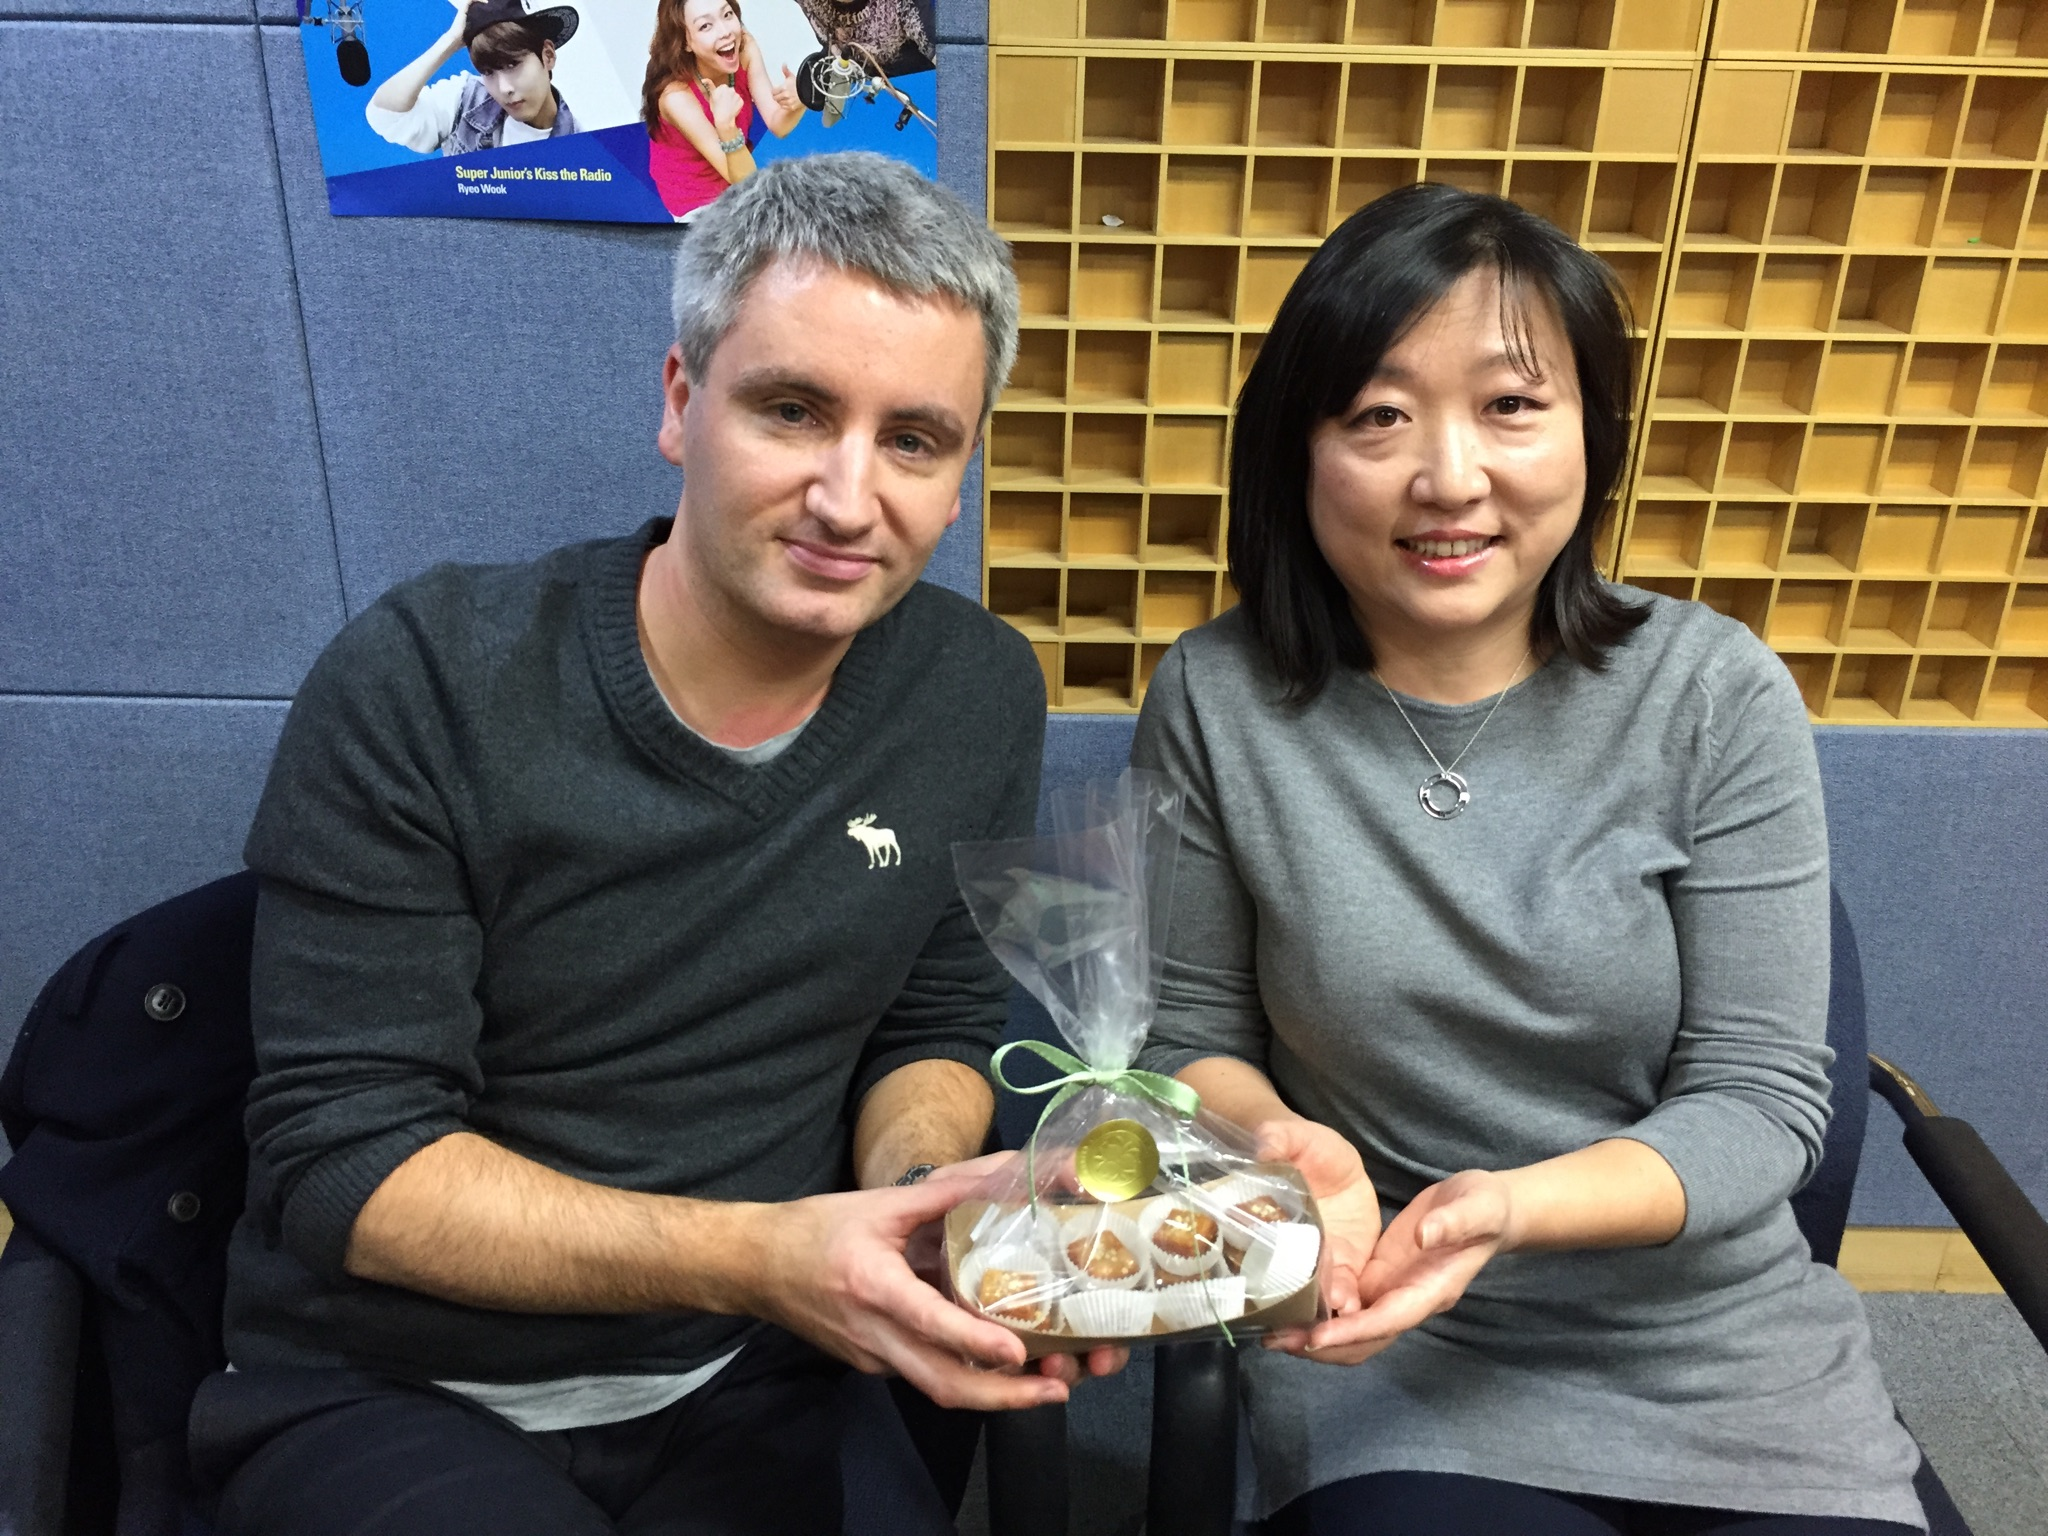 With Touch Base in Seoul (KBS World Radio) show host Mark Broome